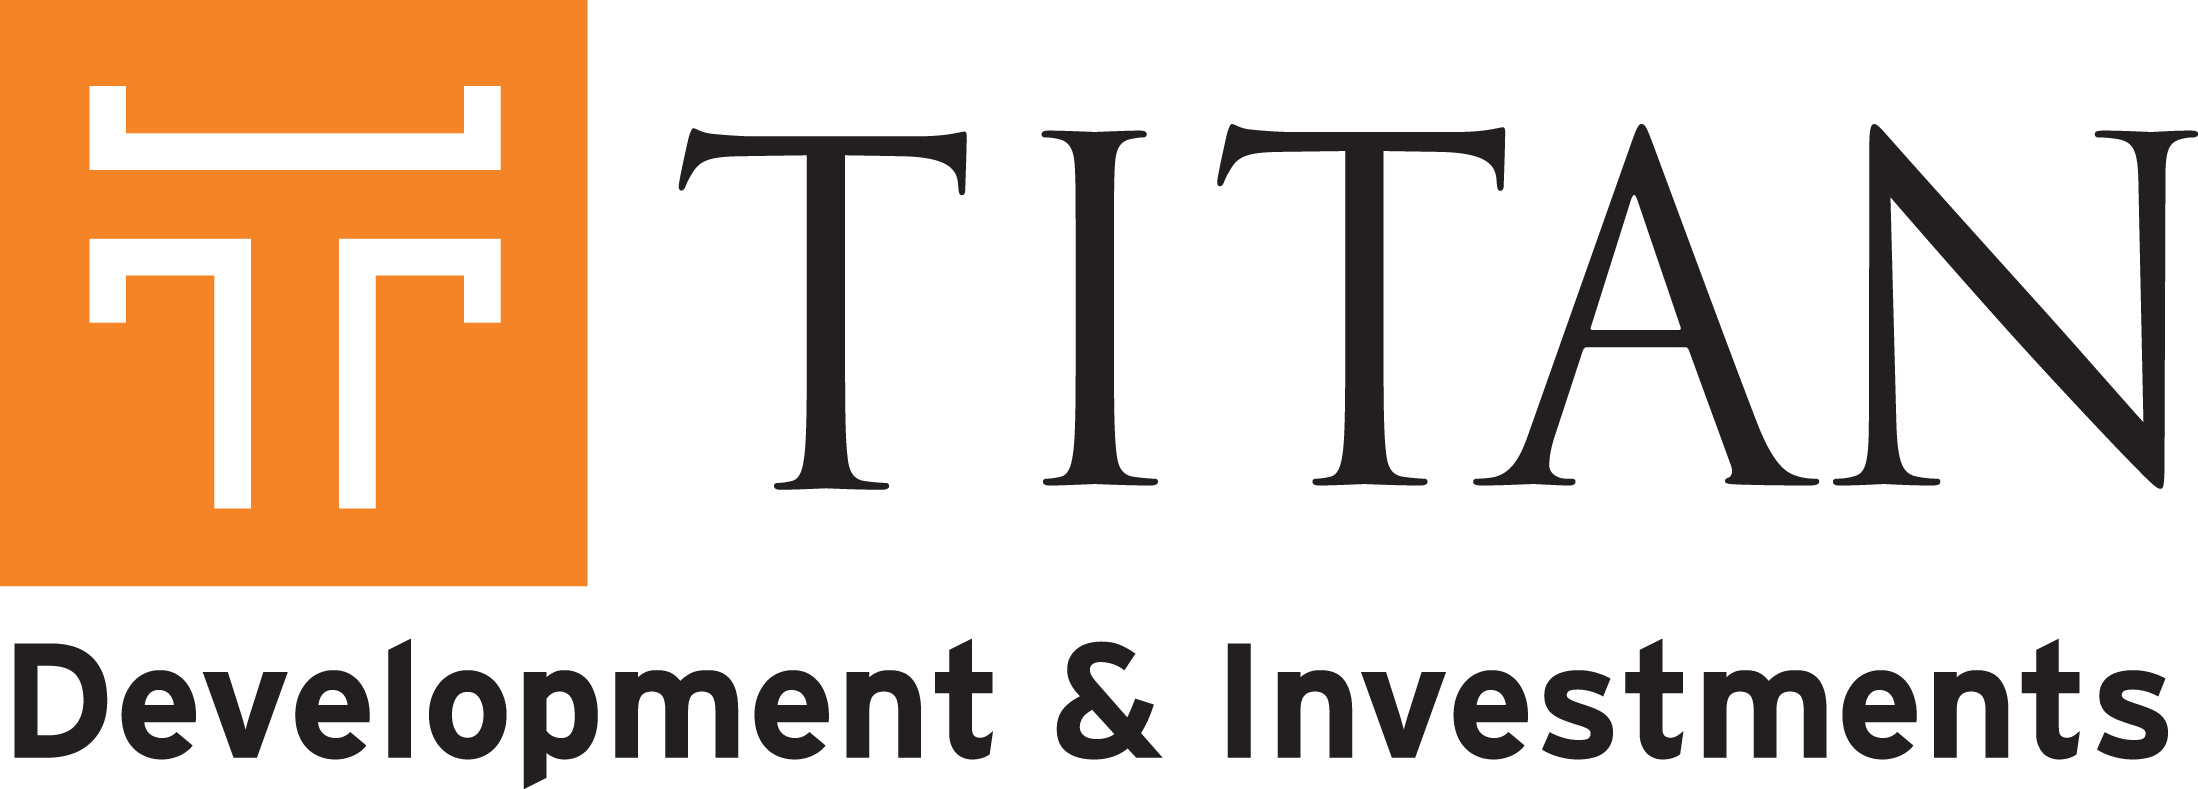 TitanDevelopmentInvestments.Logo.png